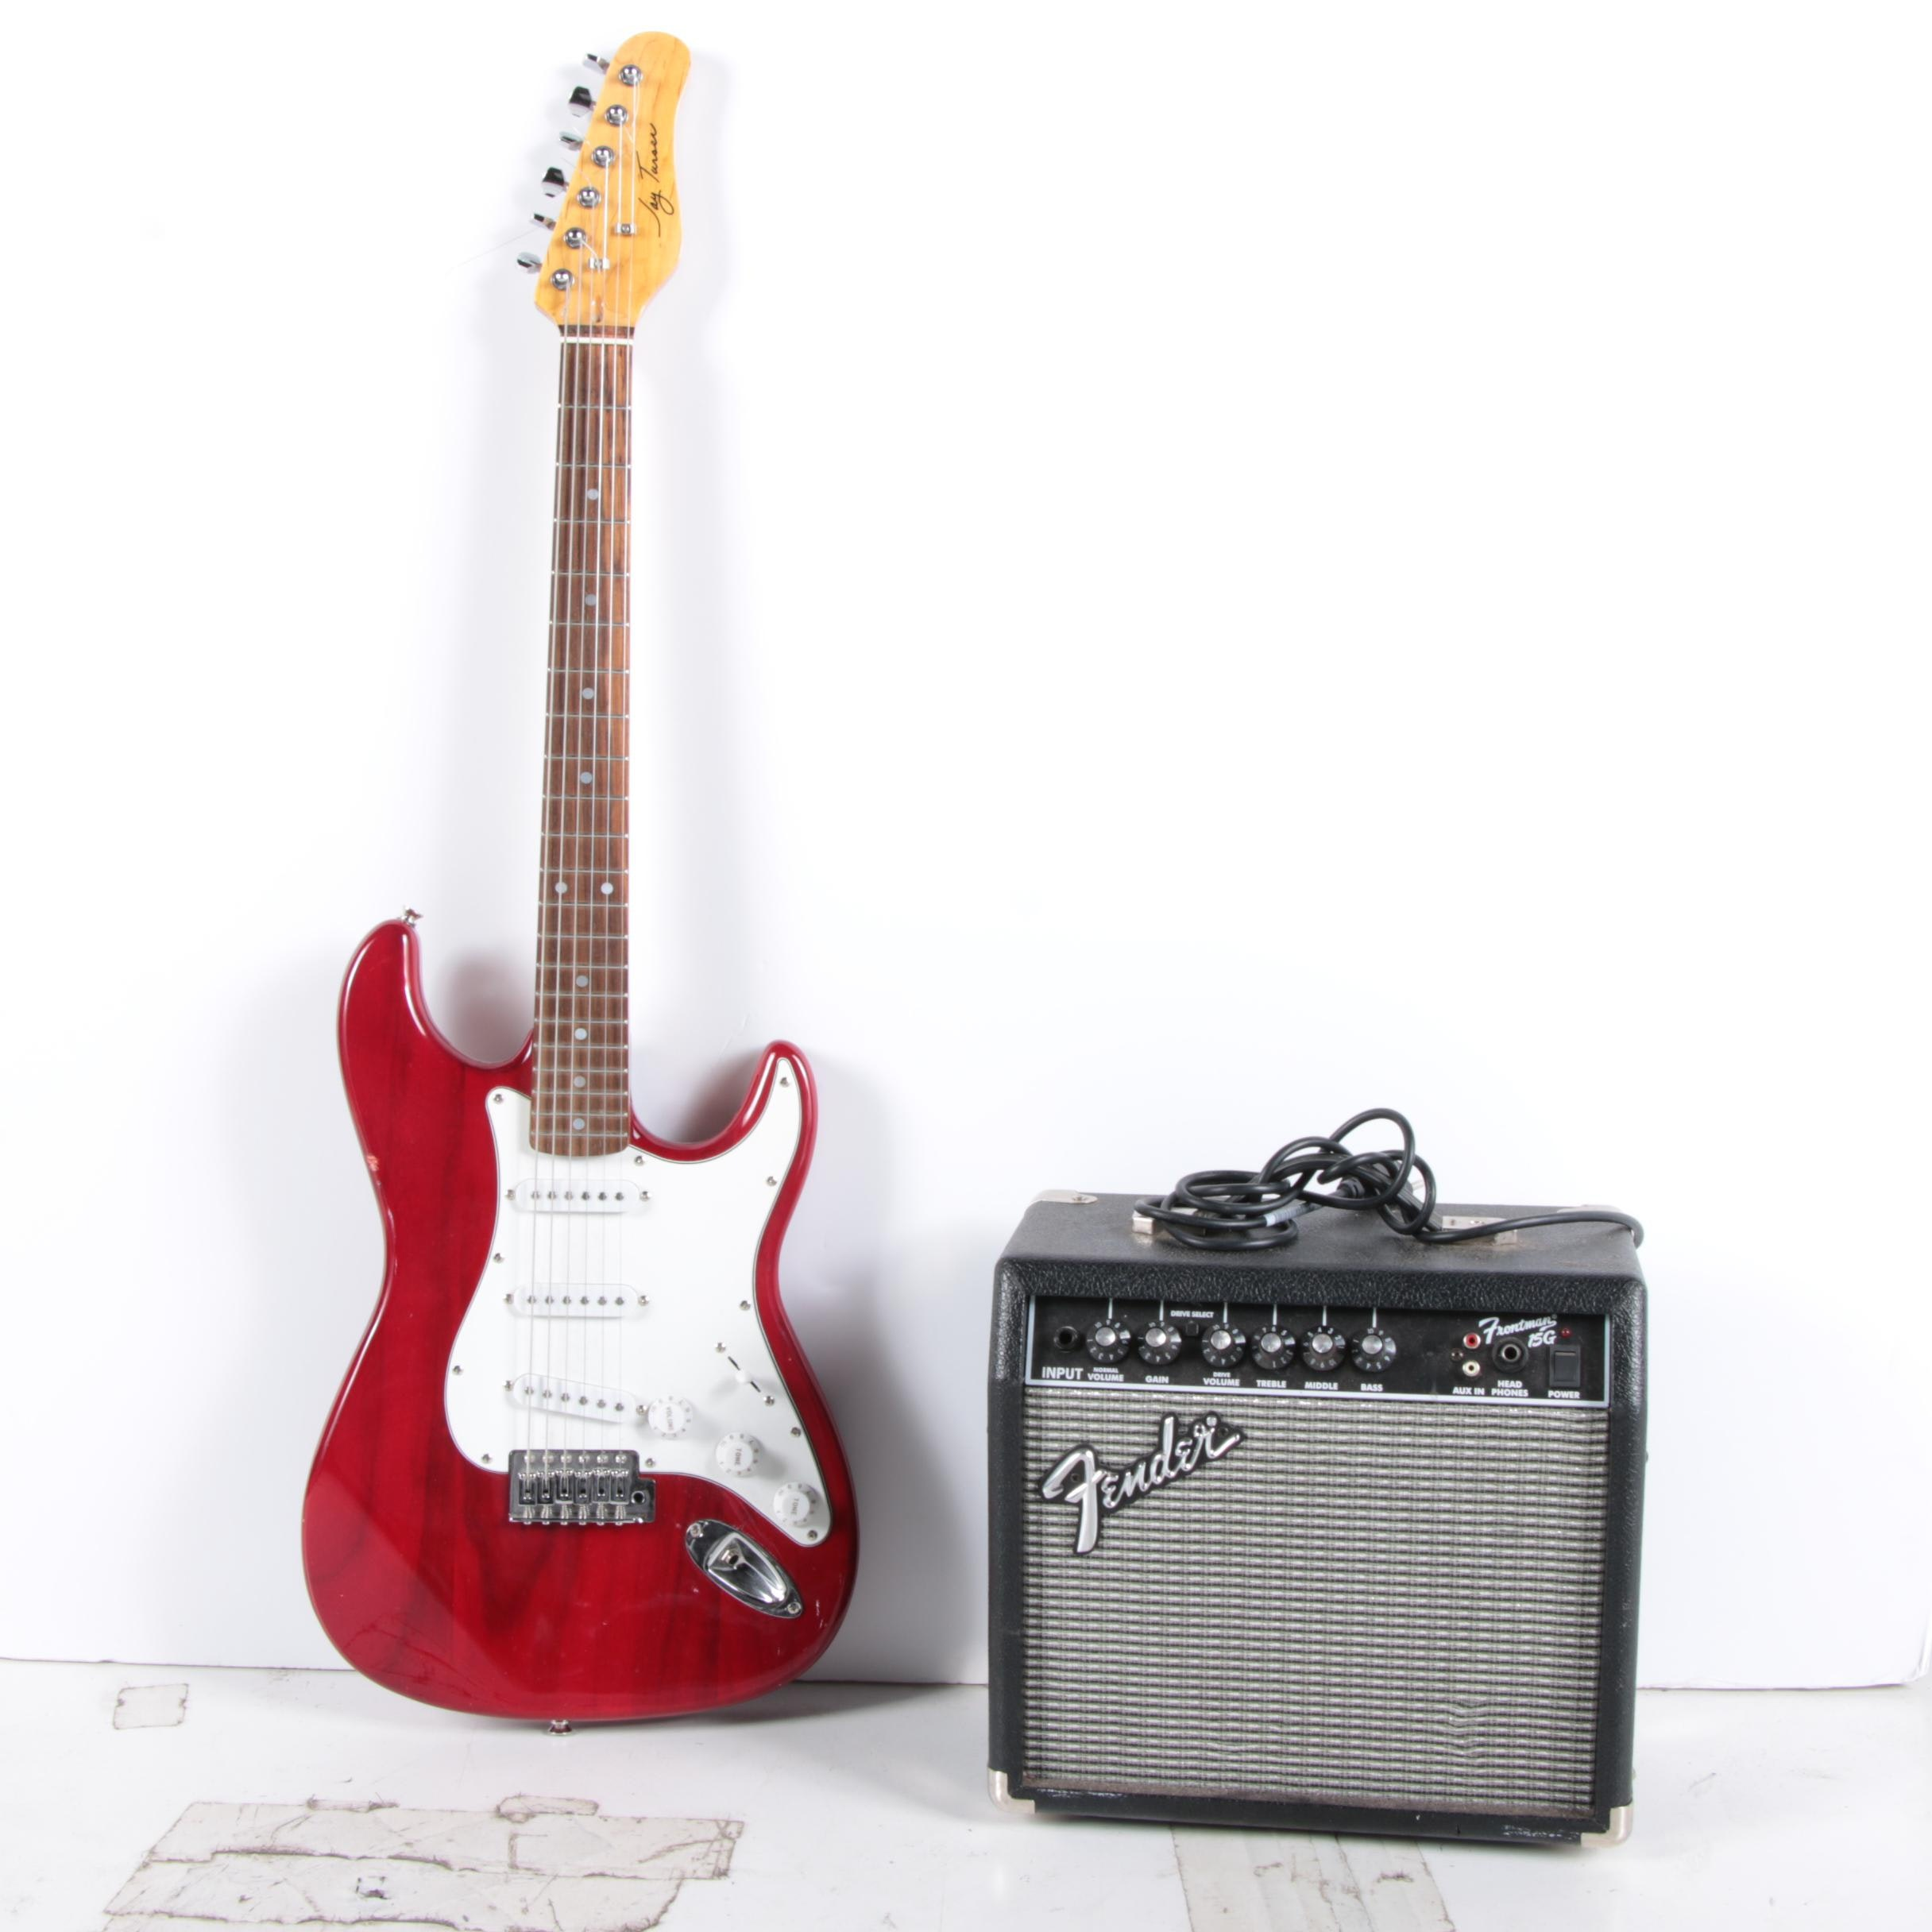 Jay Turser Electric Guitar and Fender Frontman 15G Amplifier